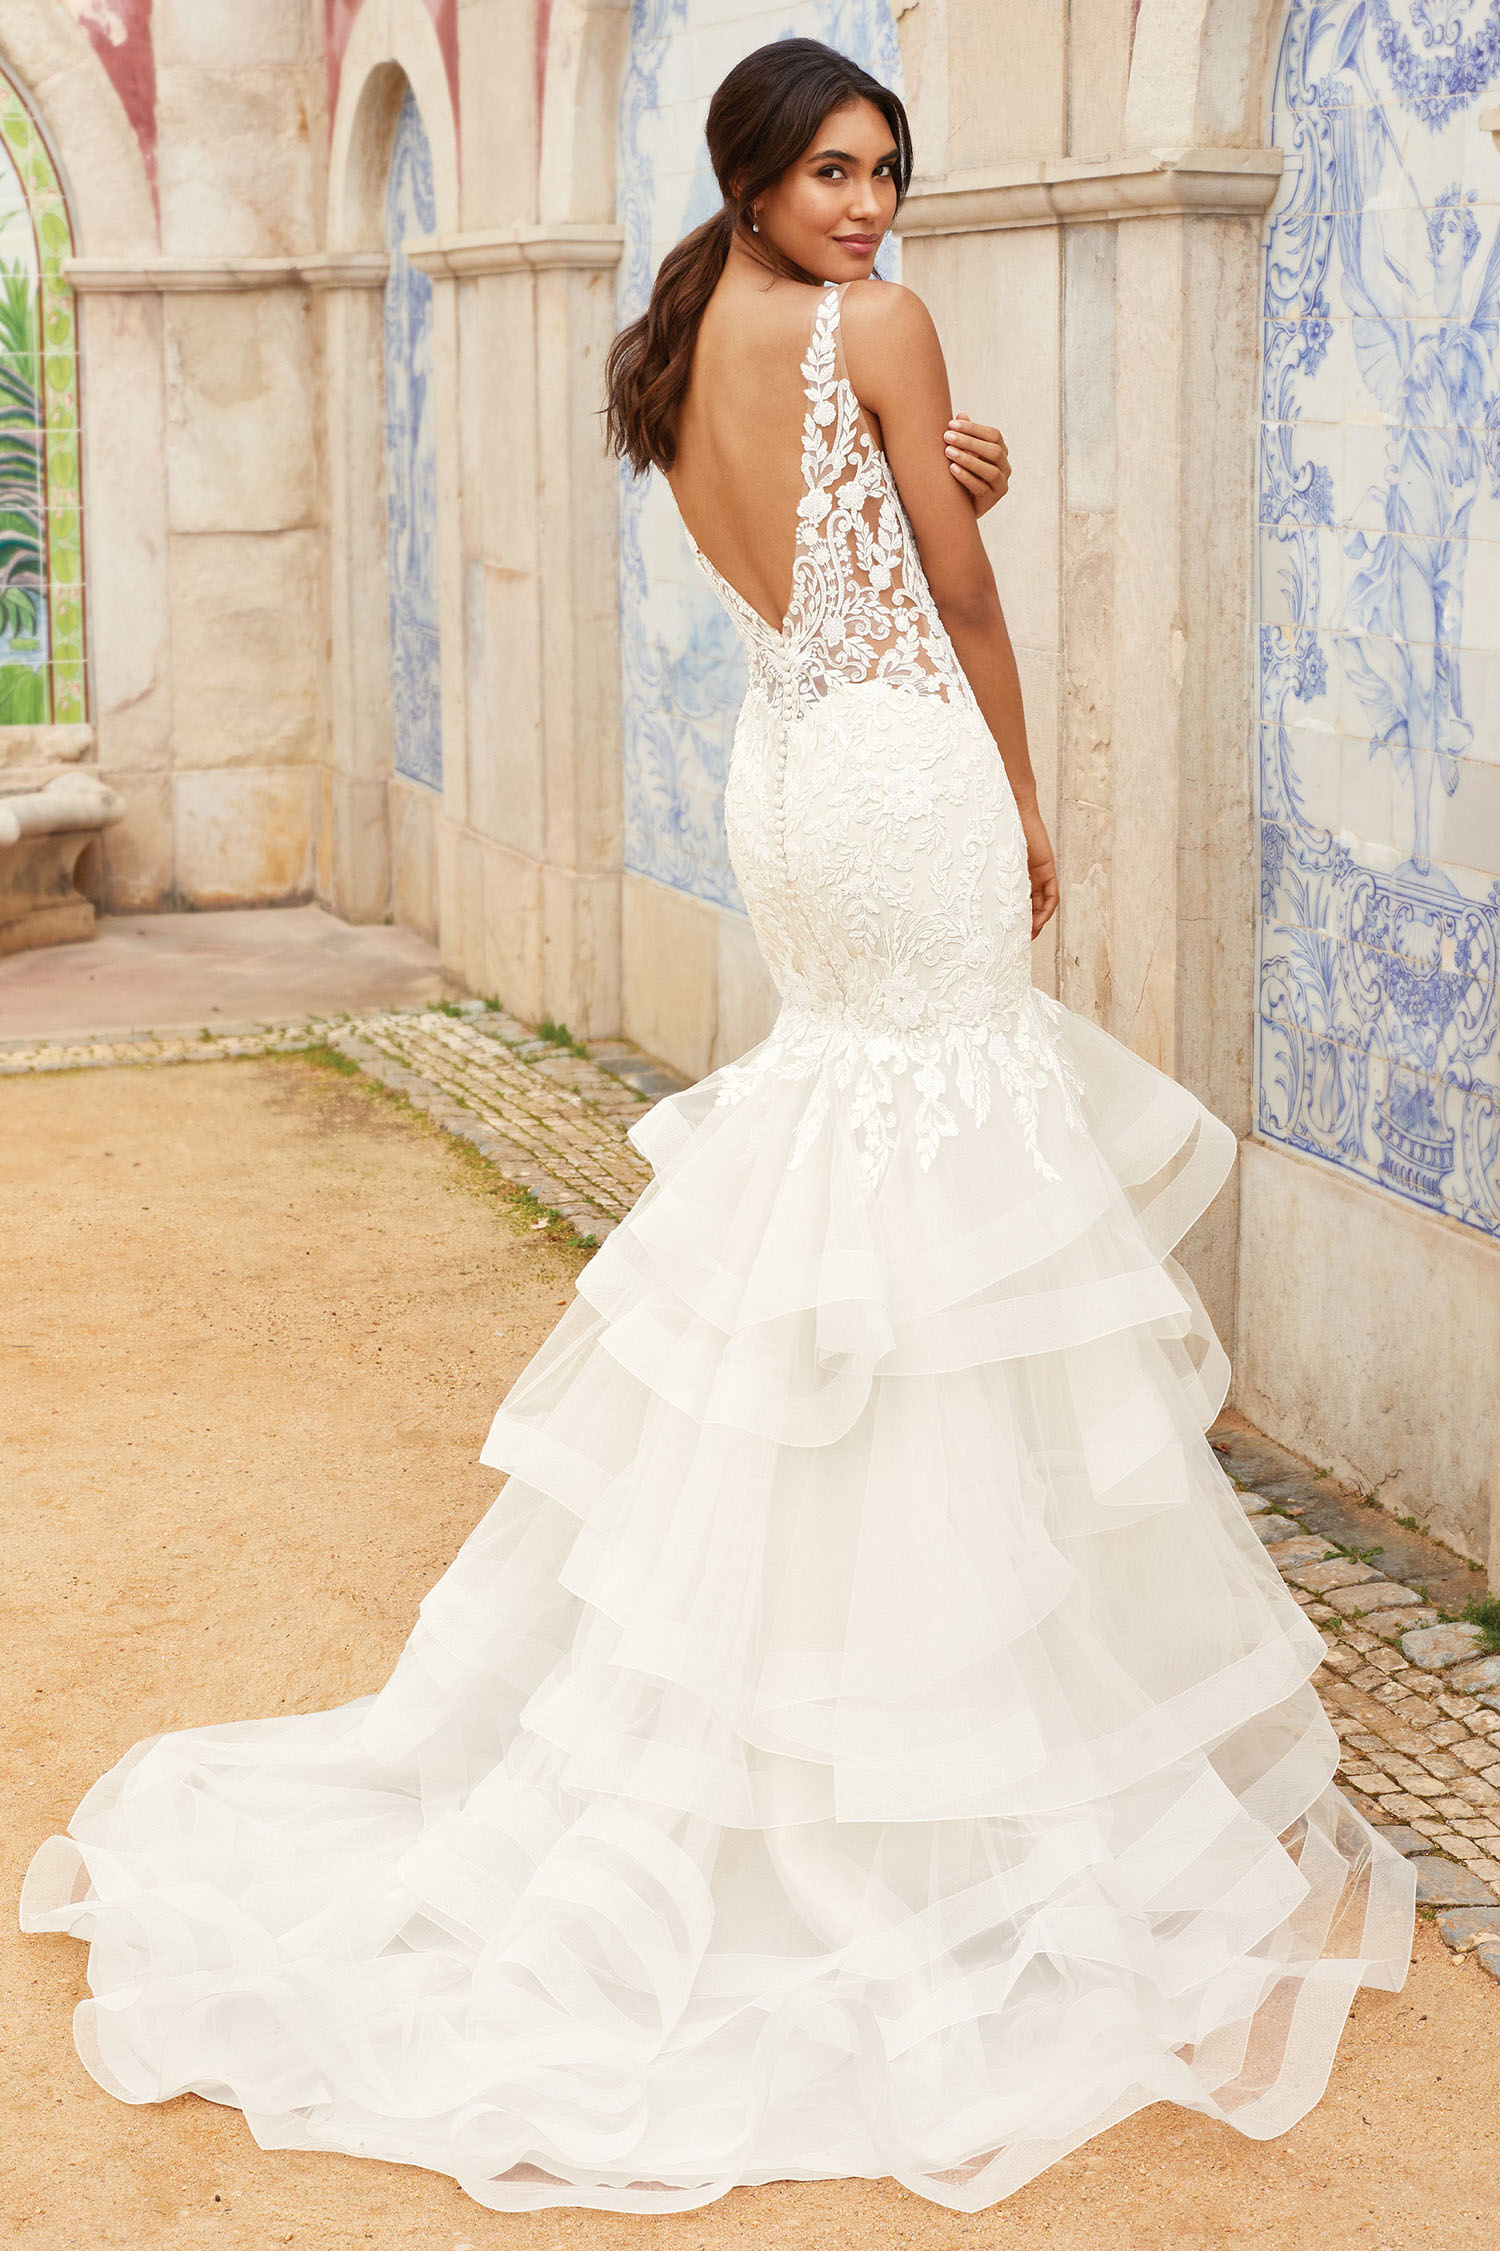 Bride wearing figure hugging fishtail gown with tiered skirt